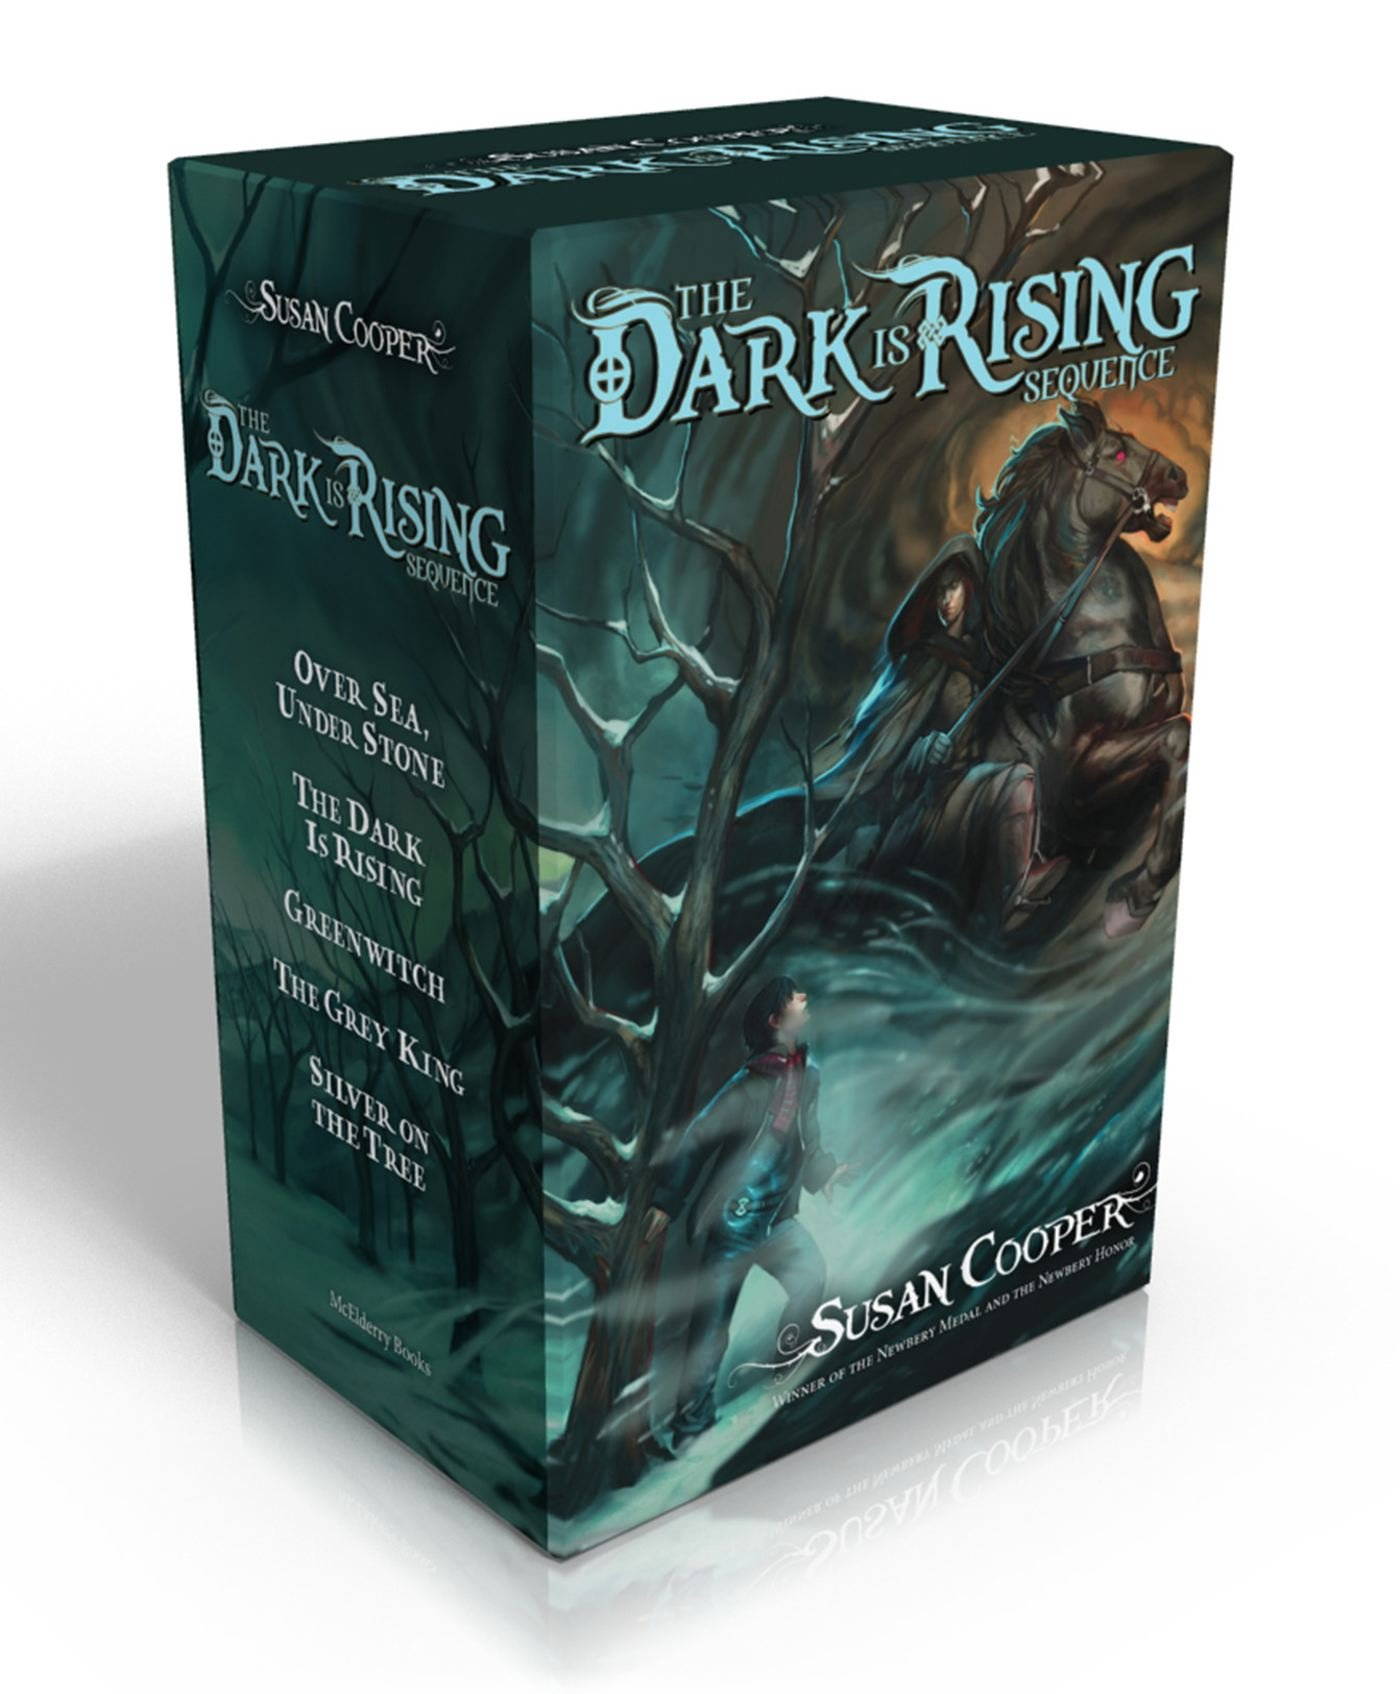 The Dark Is Rising Sequence: Over Sea Under Stone/The Dark Is Rising/Greenwitch/The Grey King/Silver on the Tree